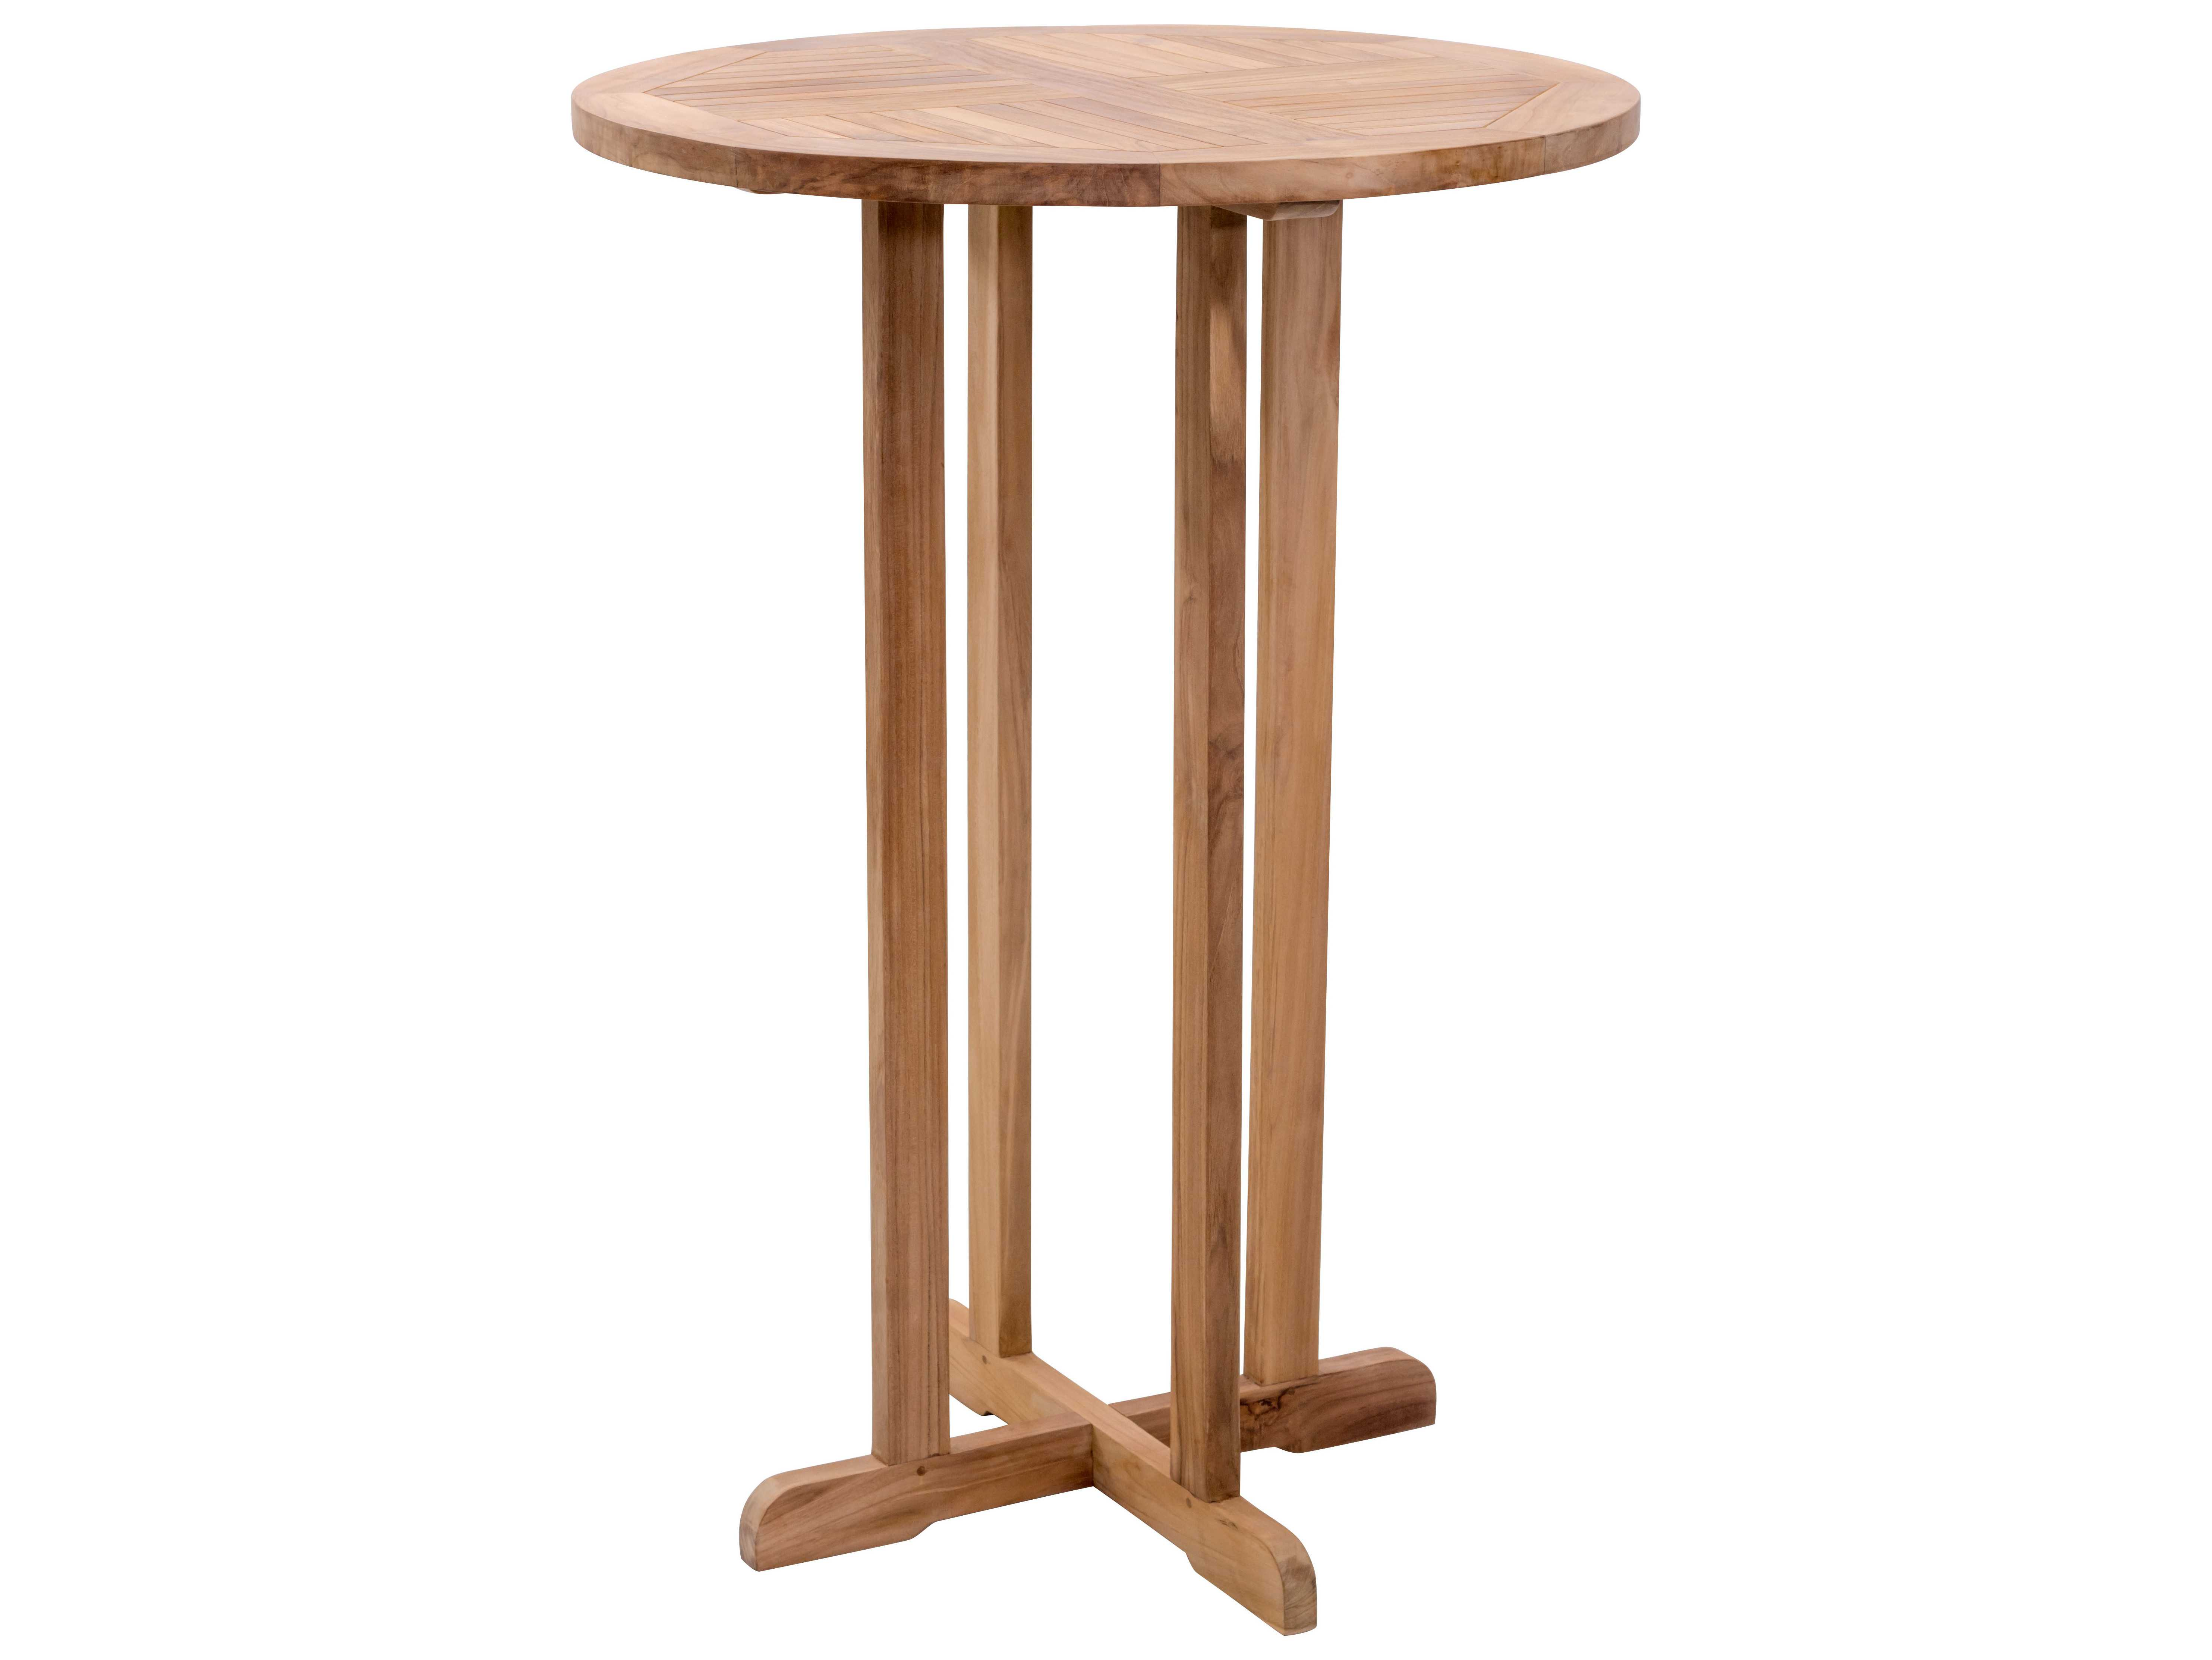 Zuo outdoor trimaran teak round bar table in natural for Table cuisine 80 x 80